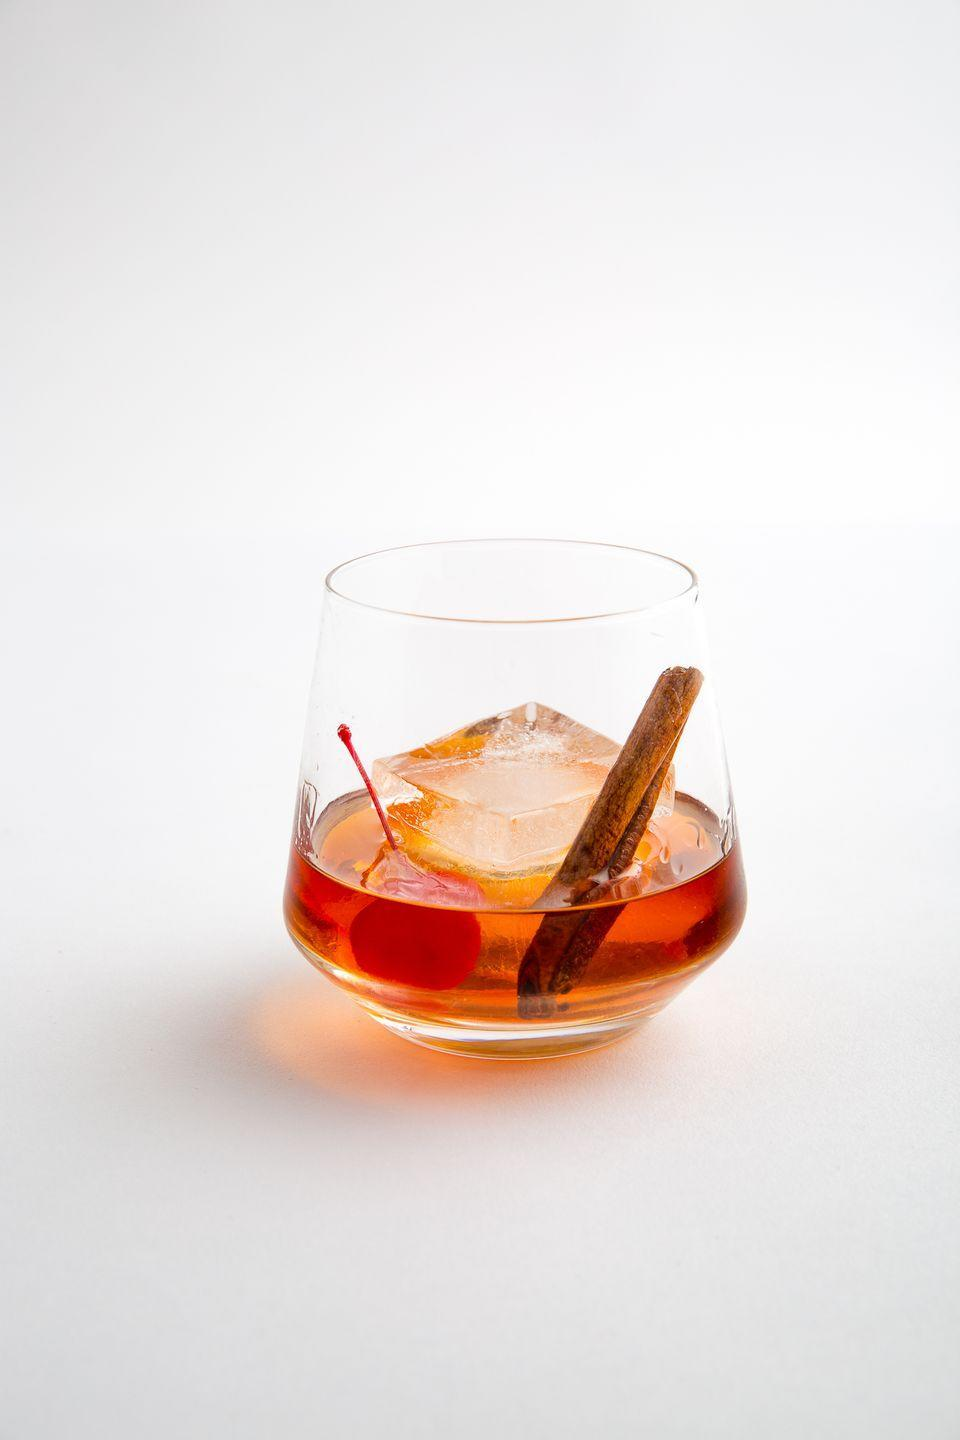 "<p>Try a sweet spin on the classic cocktail.</p><p>Get the recipe from <a href=""https://www.delish.com/cooking/recipe-ideas/recipes/a49745/maple-bourbon-old-fashioned-recipe/"" rel=""nofollow noopener"" target=""_blank"" data-ylk=""slk:Delish"" class=""link rapid-noclick-resp"">Delish</a>.</p>"